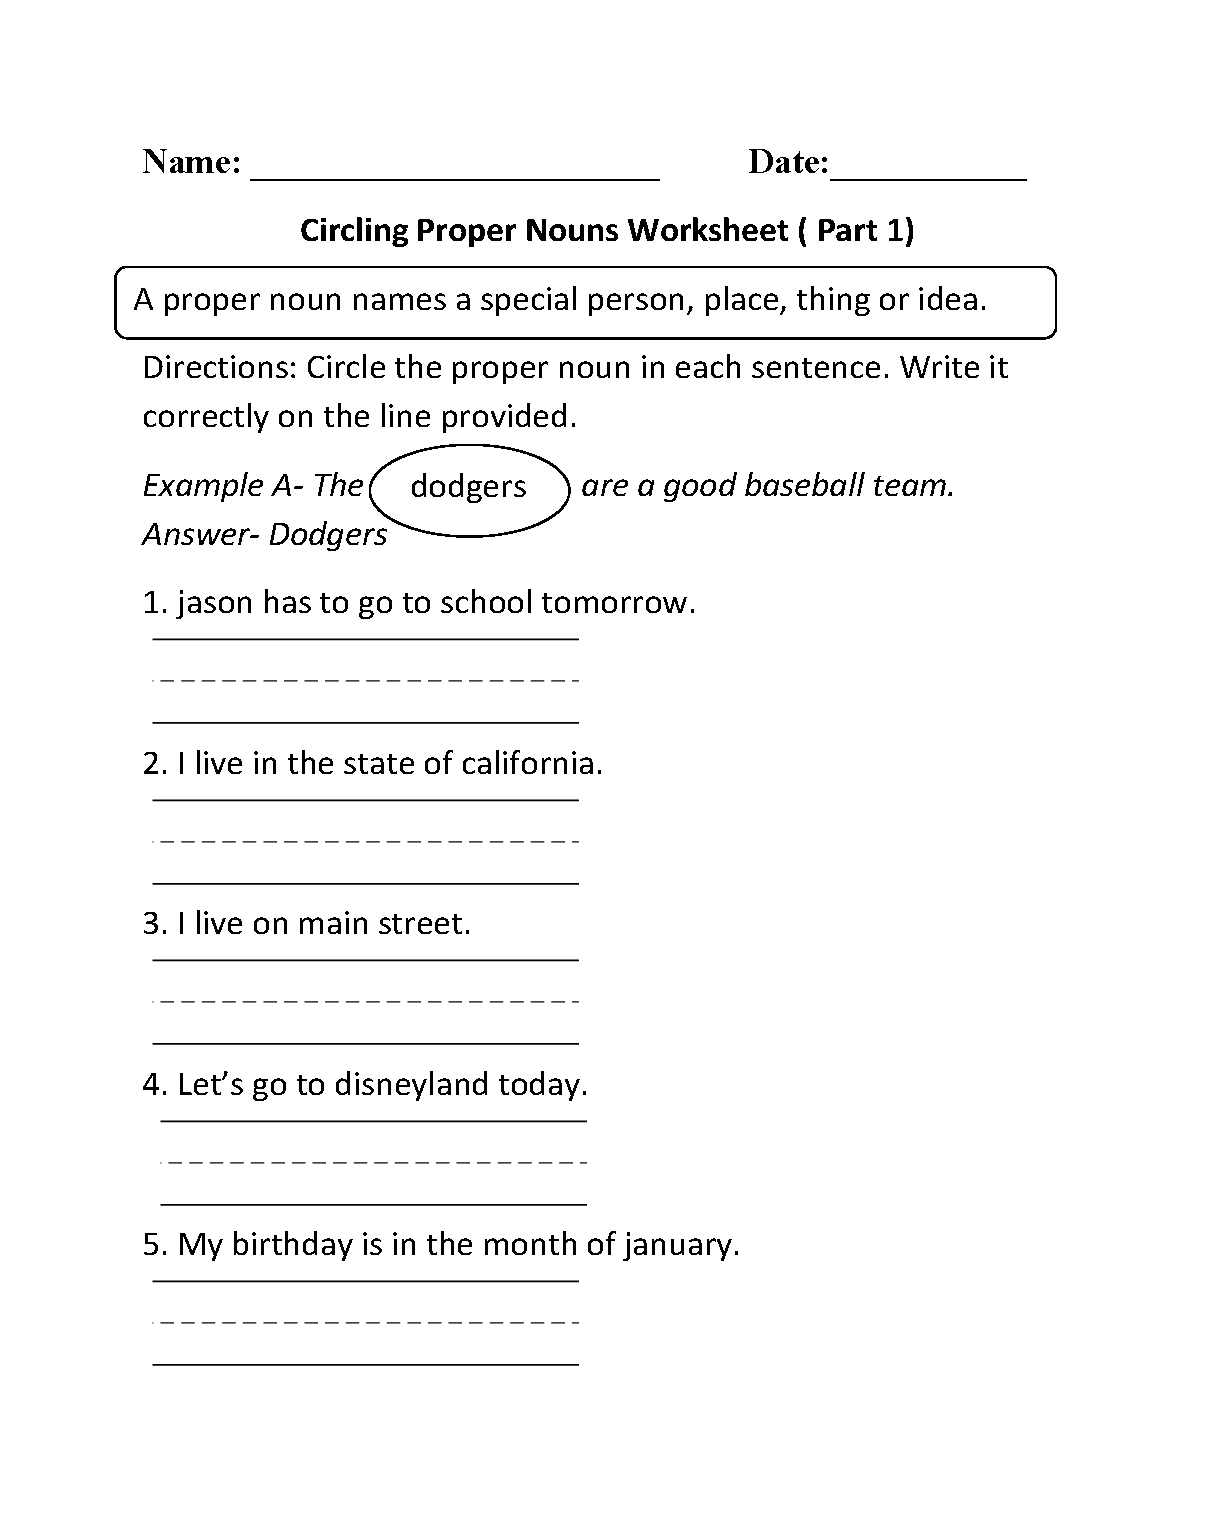 Circling Proper Nouns Worksheet Part 1